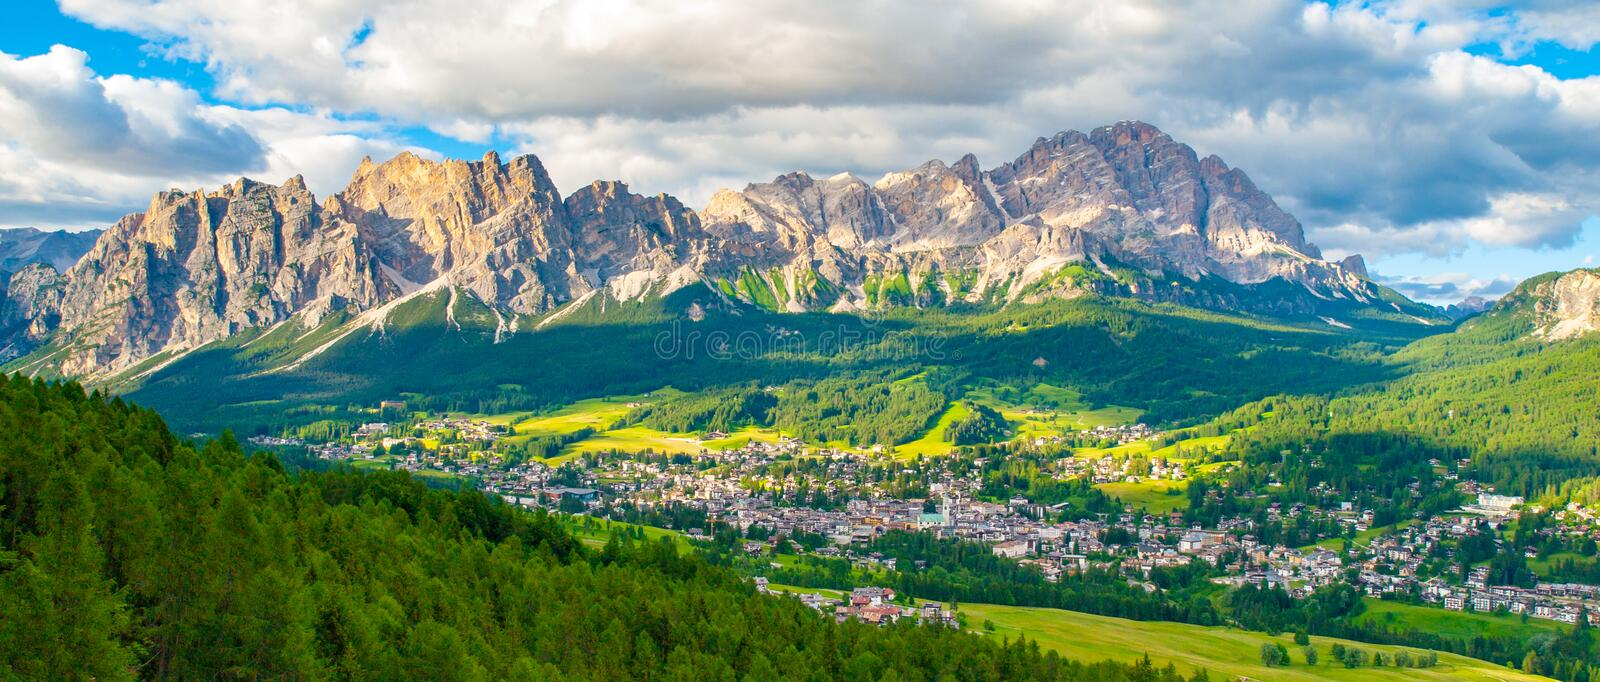 Panorama of Cortina d`Ampezzo with green meadows and alpine peaks on the background. Dolomites, Italy. royalty free stock photography